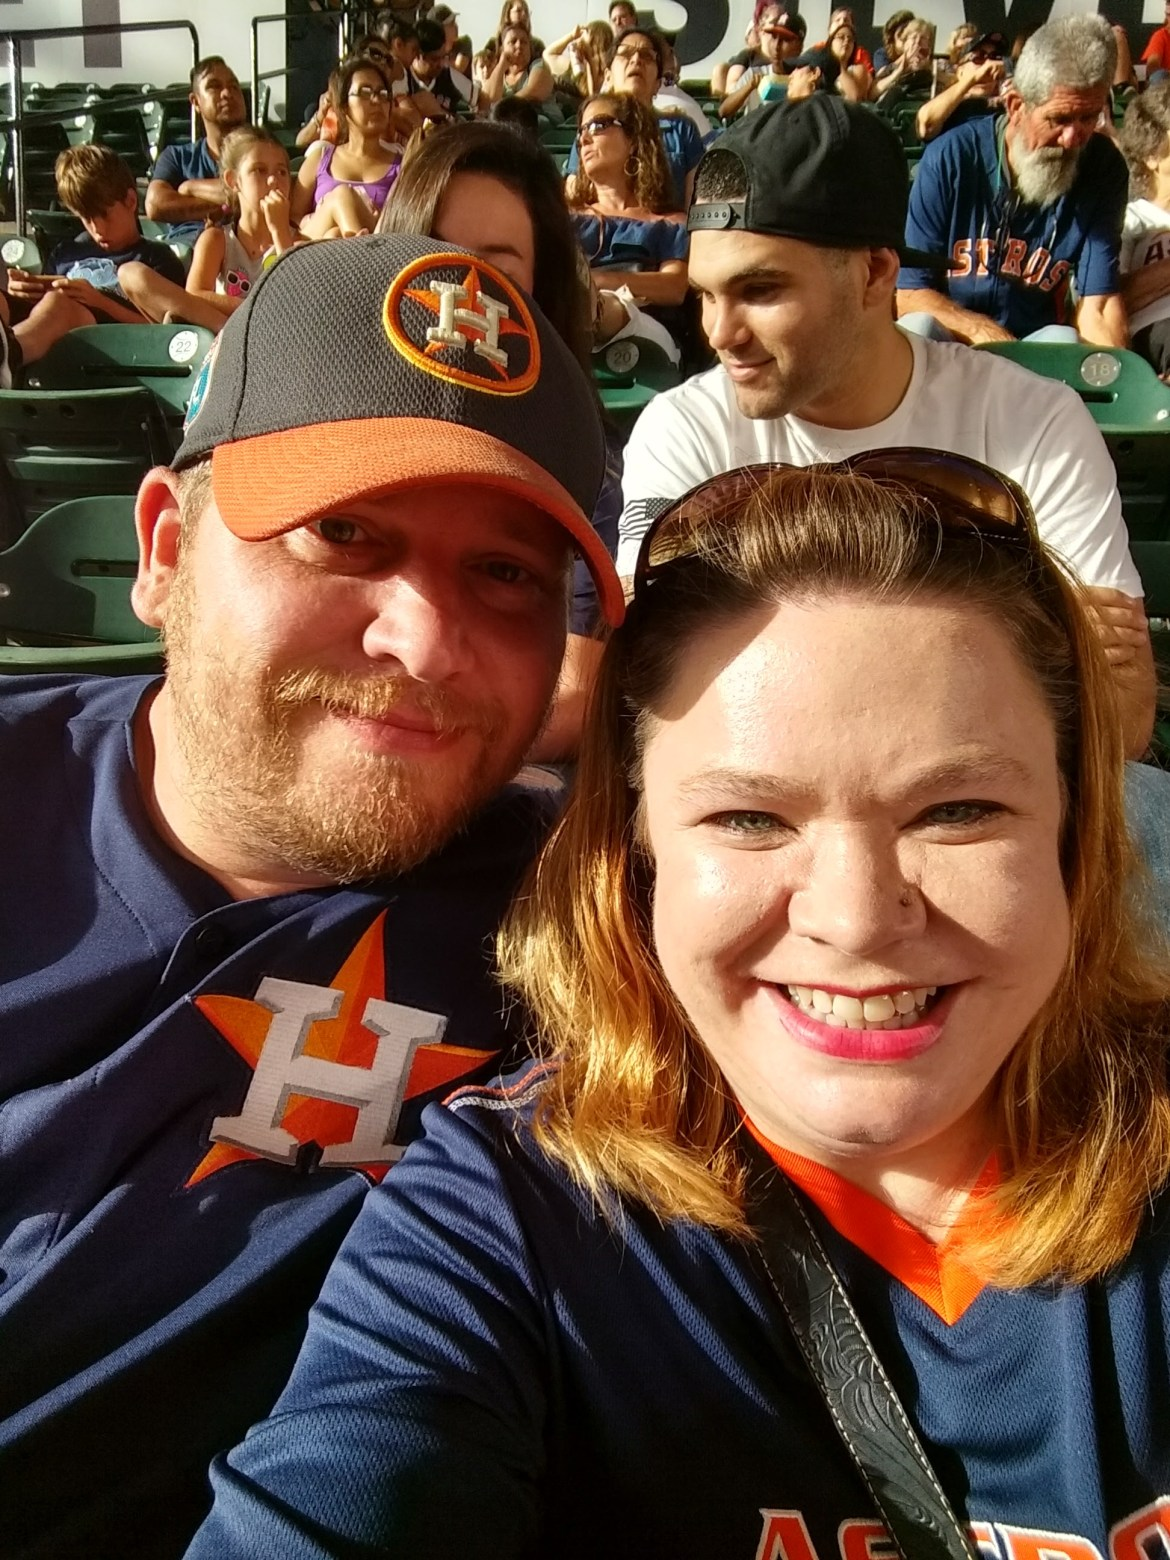 Houston Astros/ Minute Maid/ #Astros #MinuteMaid #HoustonStrong